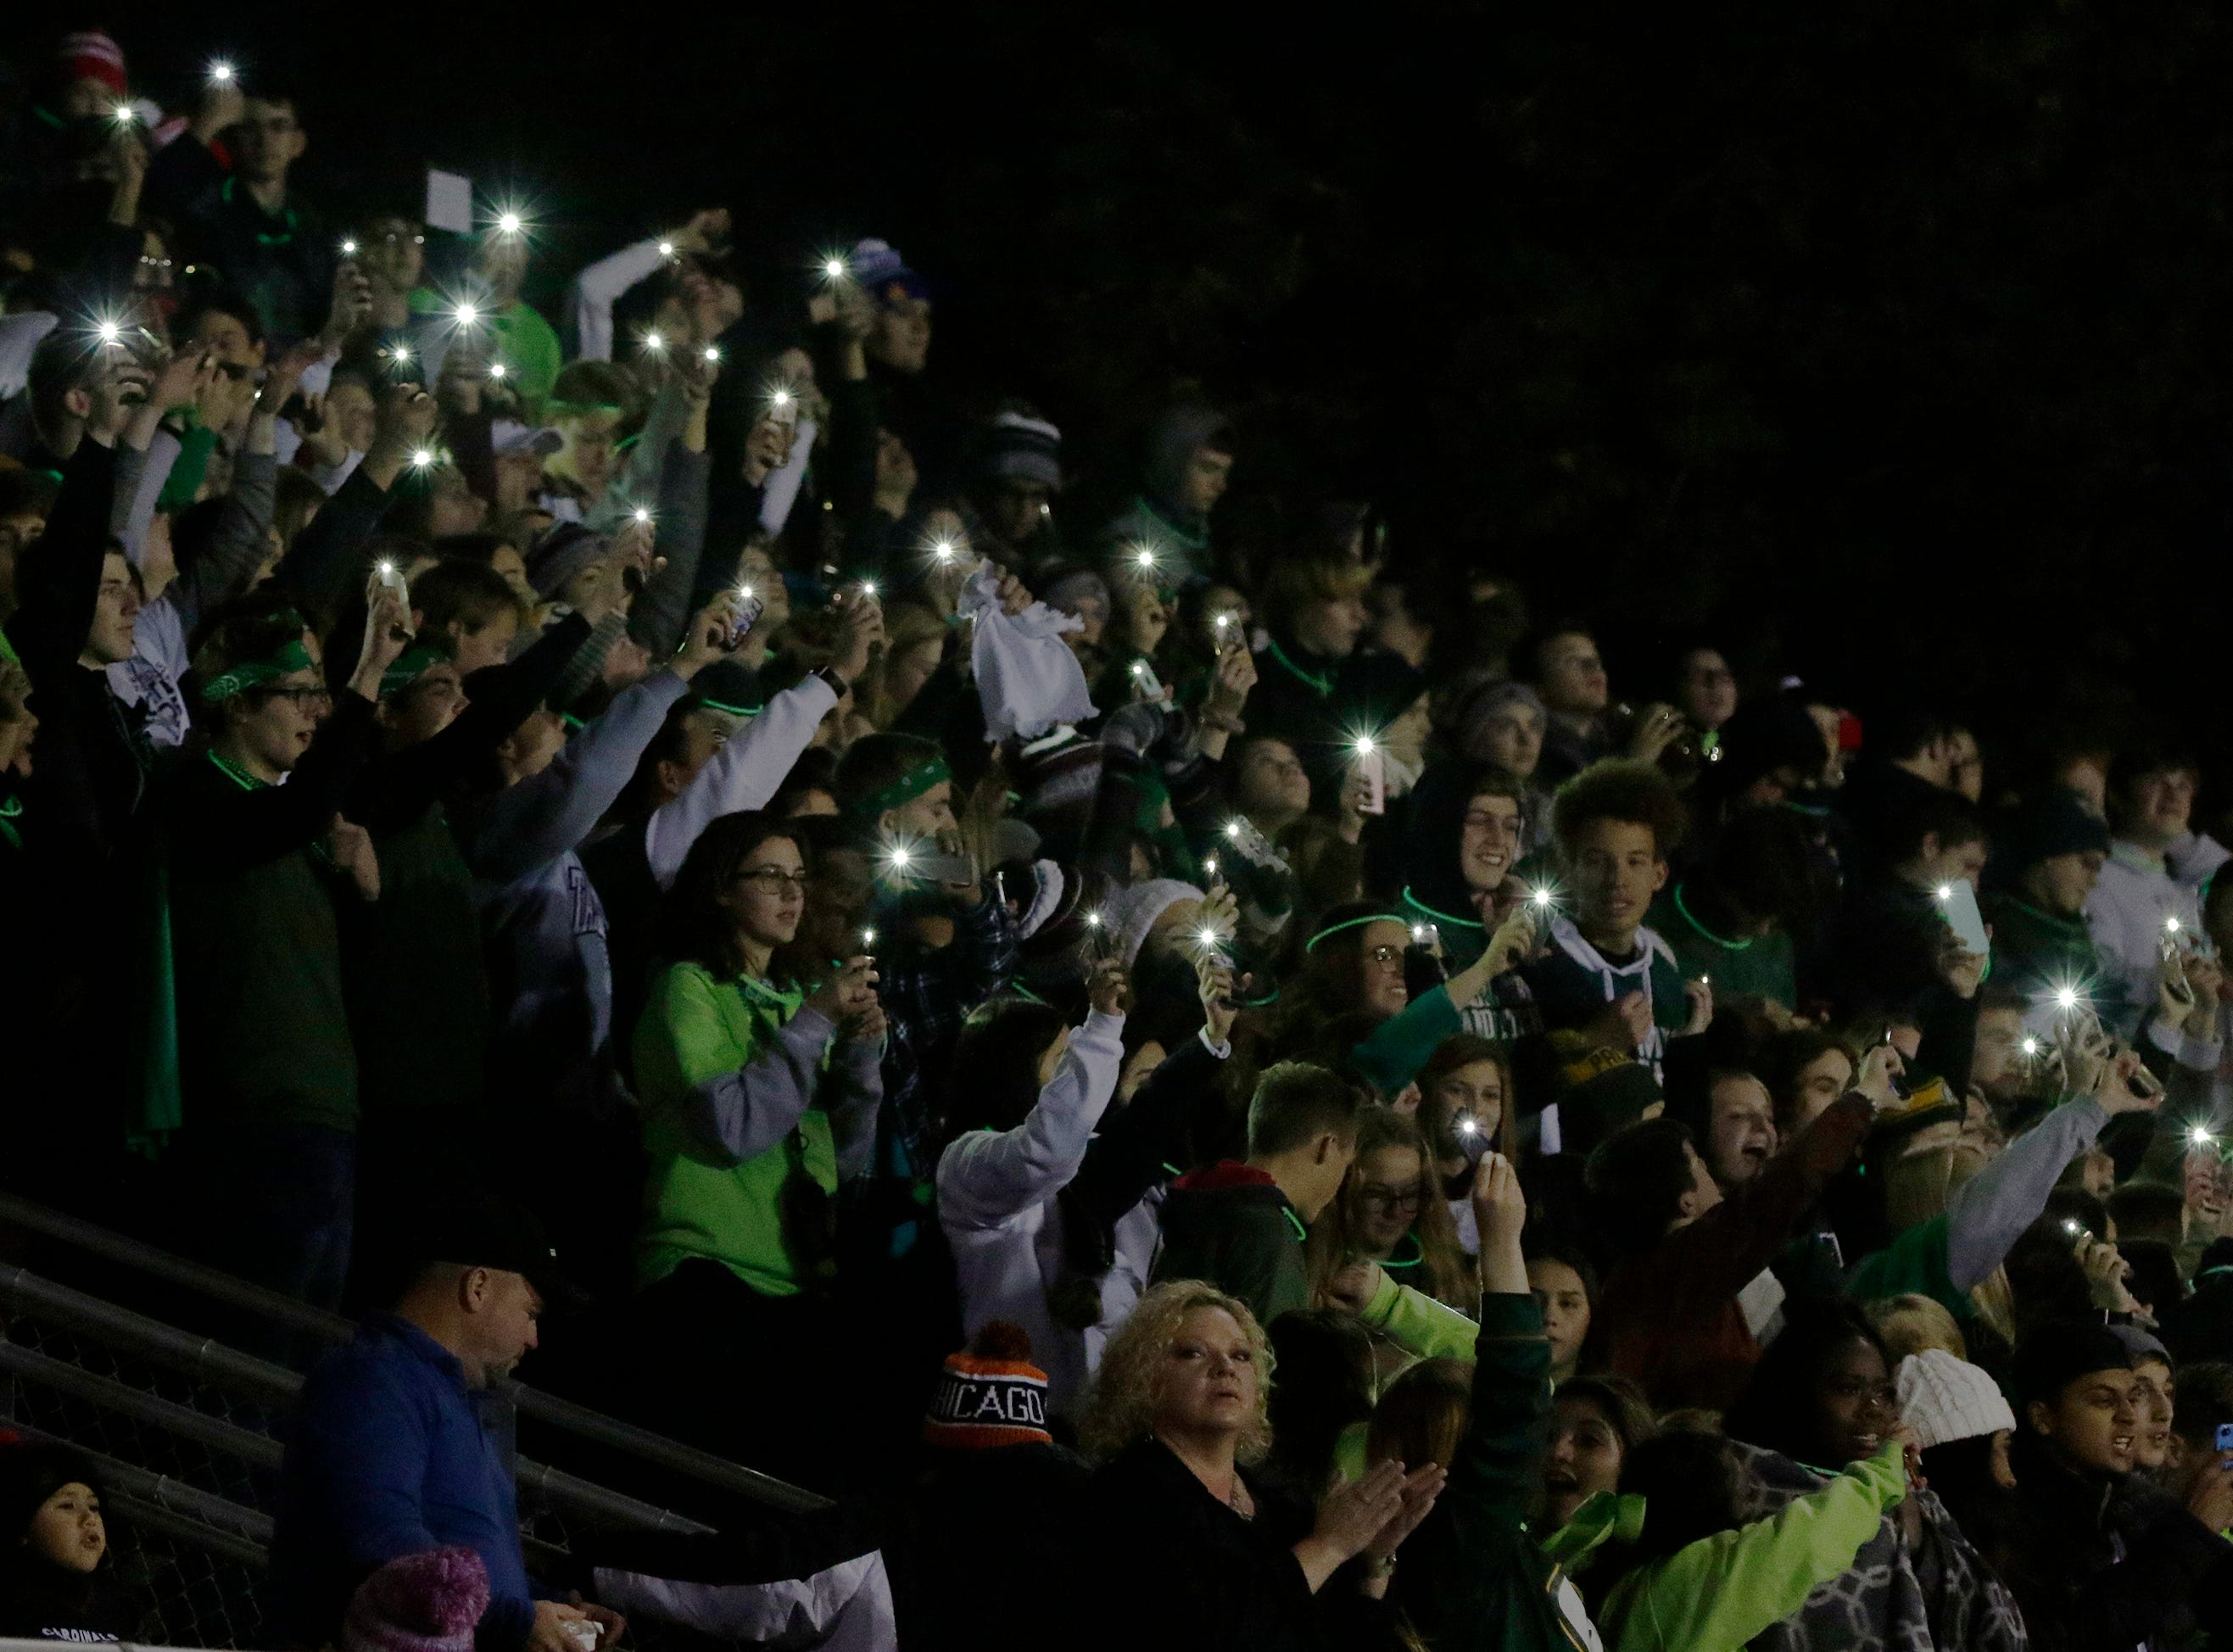 The Fond du Lac student section raised their lights after their team won 28 -22 over Arrowhead.  Fond du Lac Cardinals played Arrowhead Warhawks in WIAA football playoff sectionals, Friday, Oct. 26, 2018, at Fruth Field in Fond du Lac.Joe Sienkiewicz/USA Today NETWORK-Wisconsin